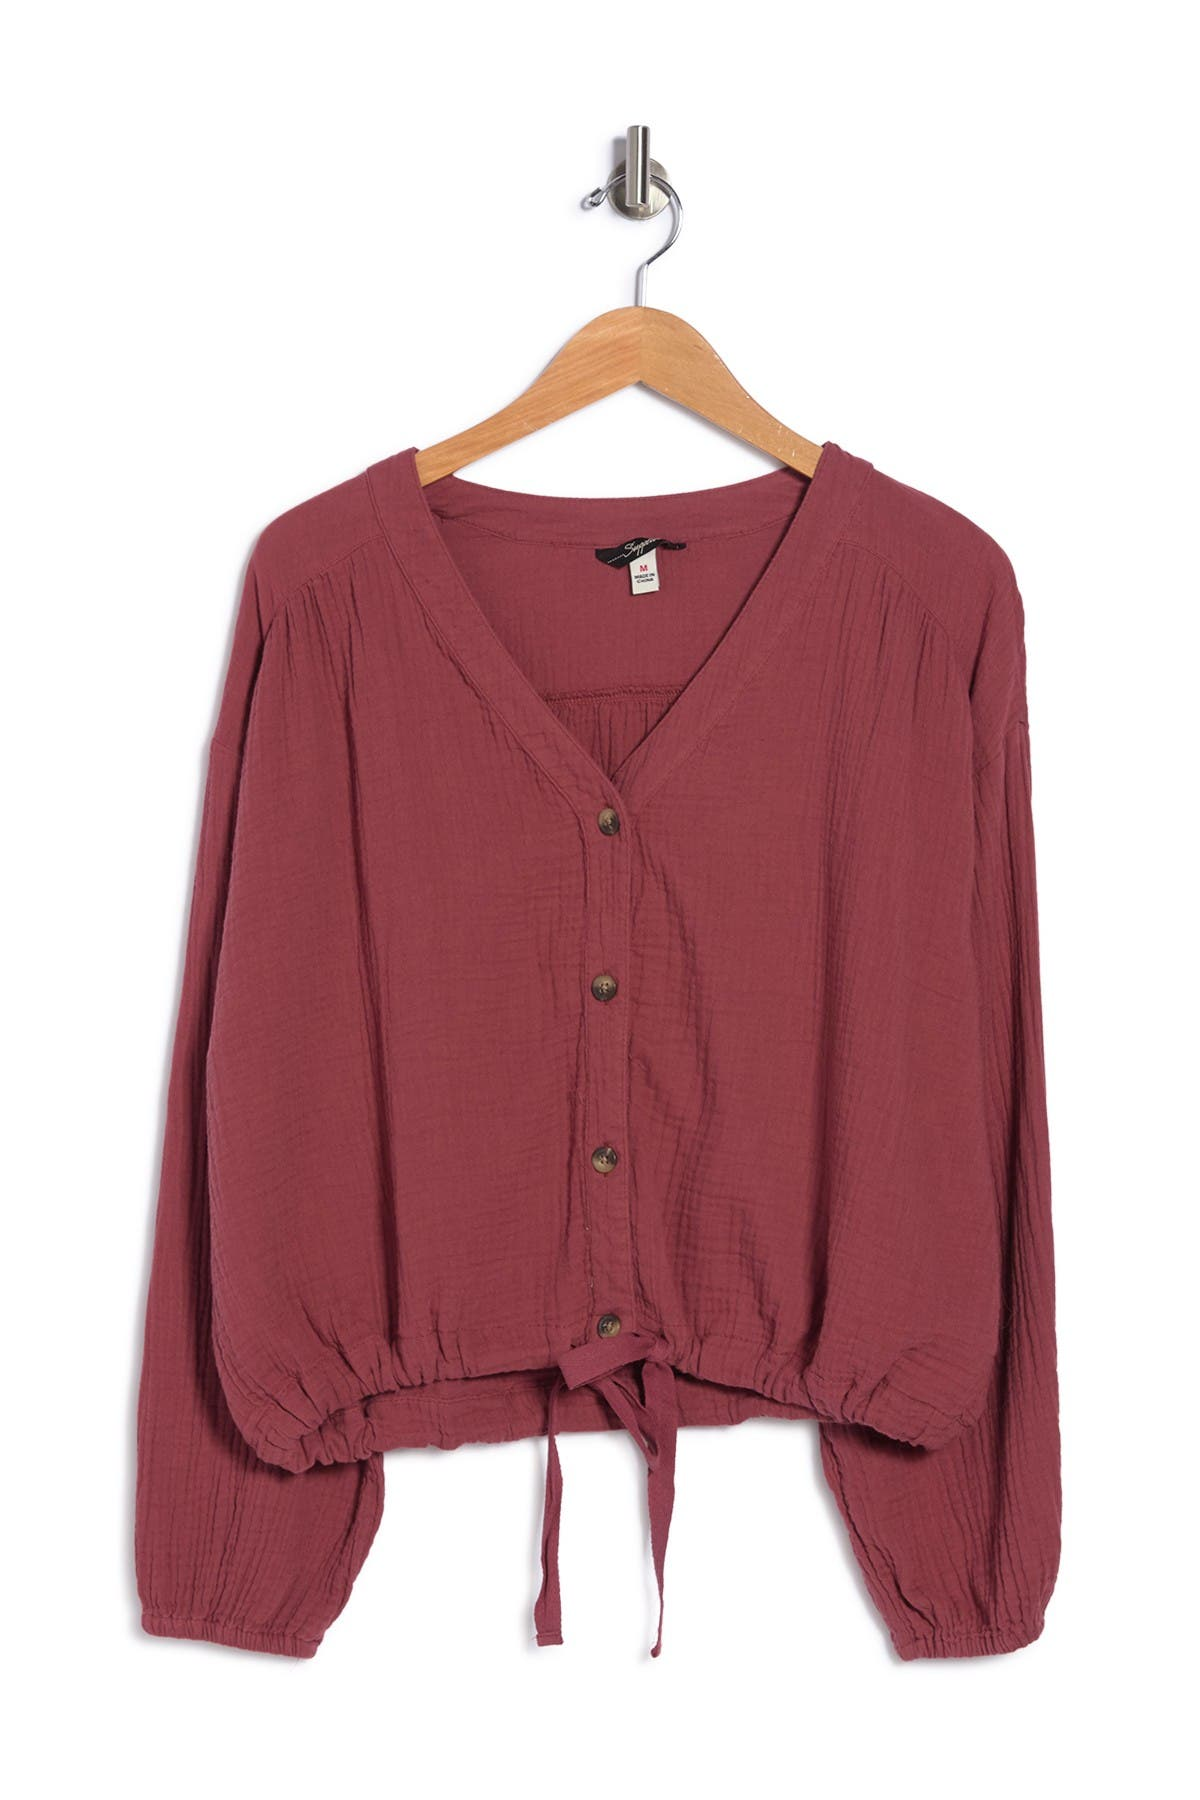 Image of SUPPLIES BY UNIONBAY Alma Long Sleeve Shirt